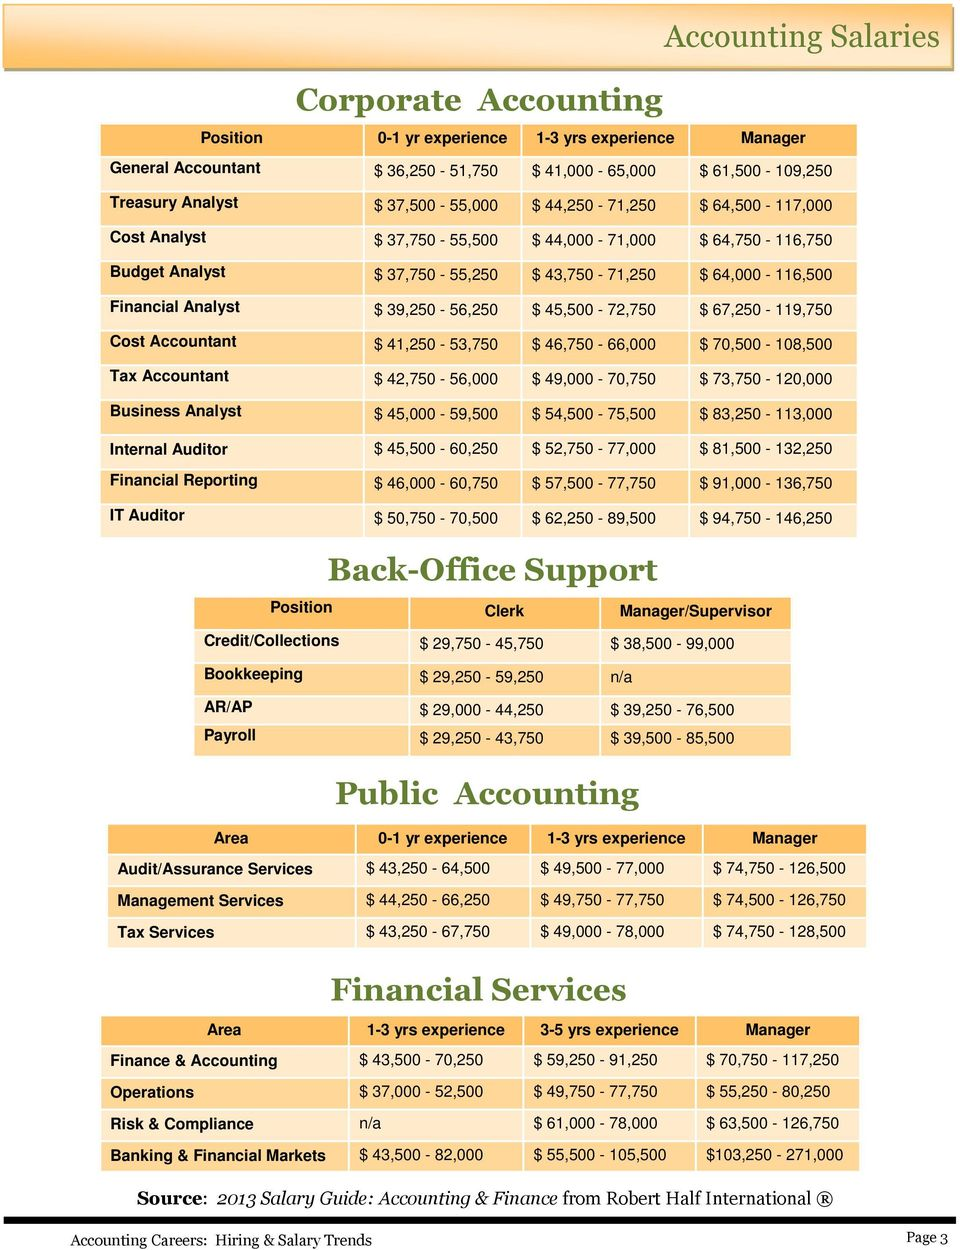 45,500-72,750 $ 67,250-119,750 Cost Accountant $ 41,250-53,750 $ 46,750-66,000 $ 70,500-108,500 Tax Accountant $ 42,750-56,000 $ 49,000-70,750 $ 73,750-120,000 Business Analyst $ 45,000-59,500 $